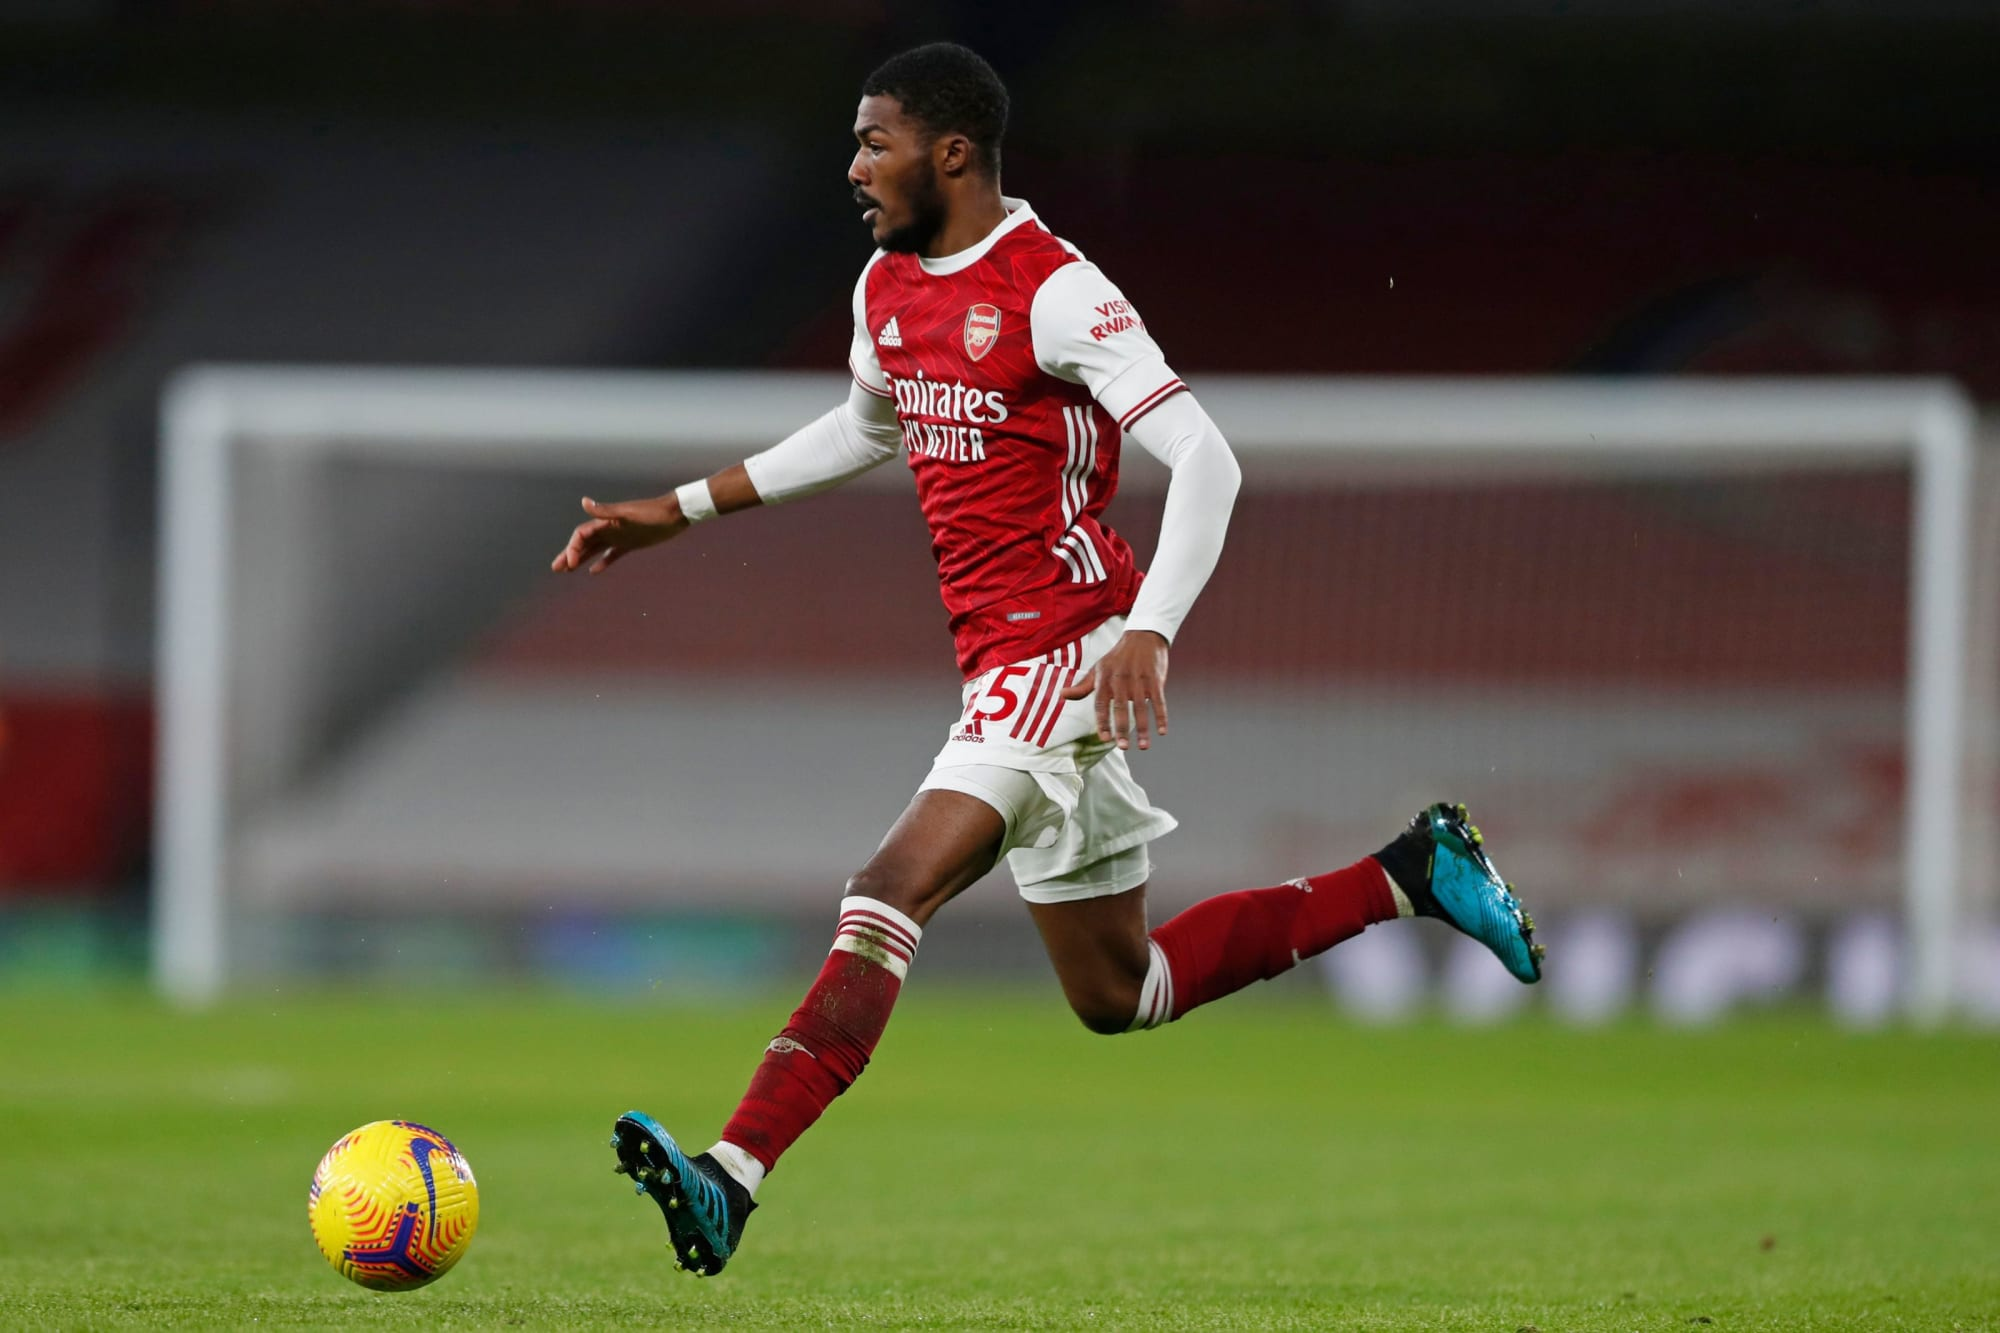 Arsenal See Ainsley Maitland-Niles Struggle In Makeshift Role